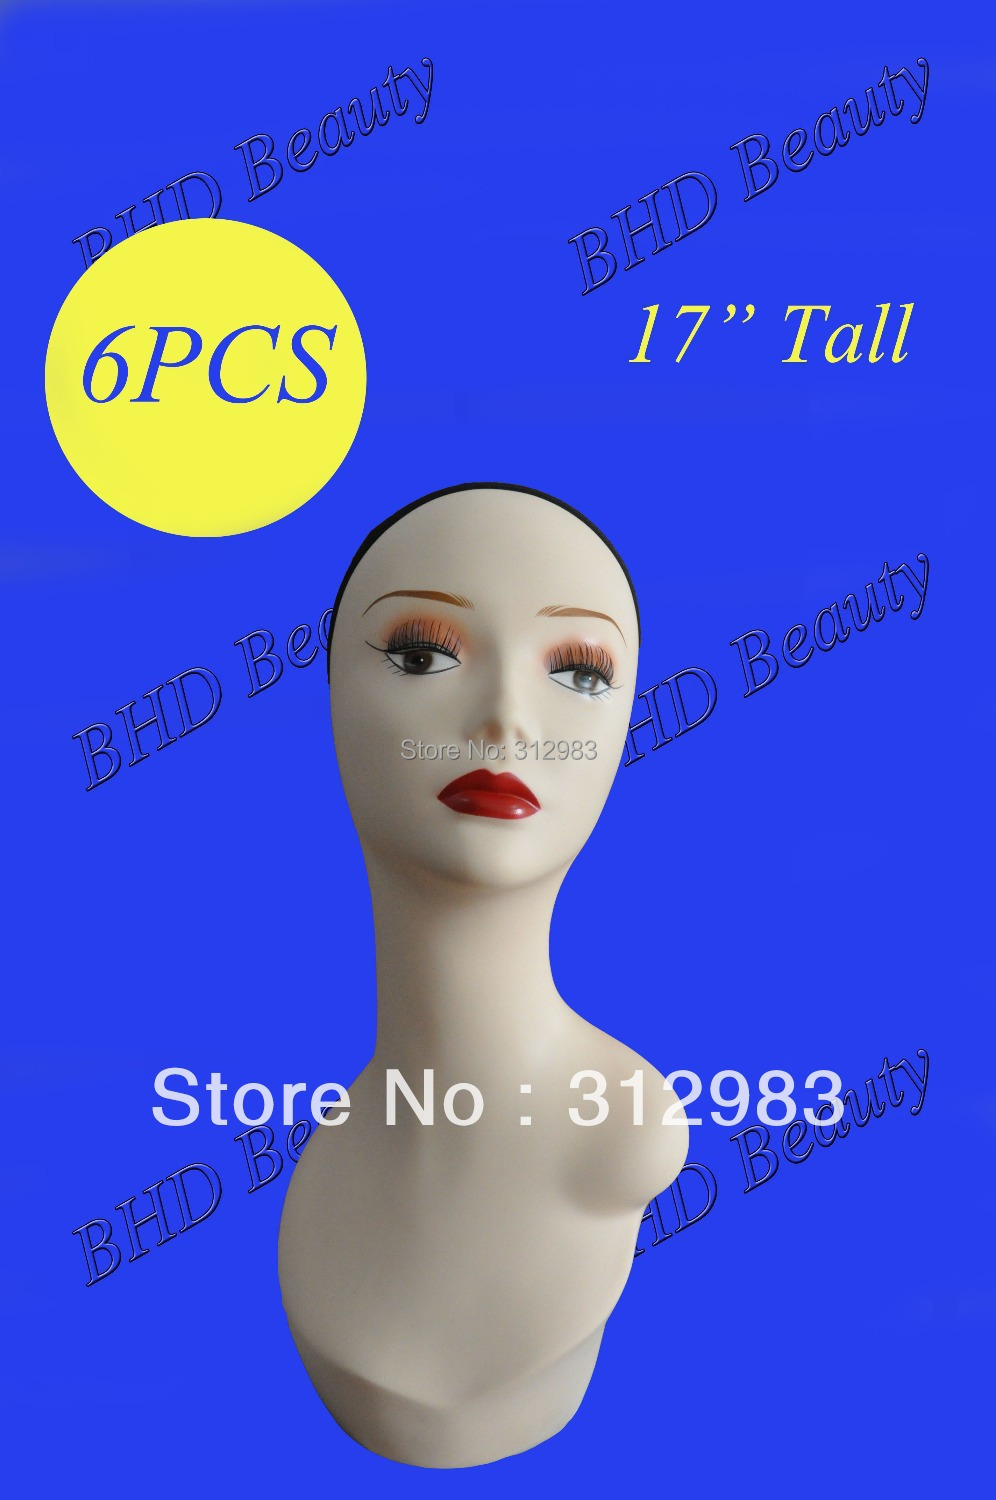 """6PCS-17"""" Tall PVC rubber mannequin manikin styrofoam head wig/weft/hair extension/cap/necklace display PZGD white color(China (Mainland))"""